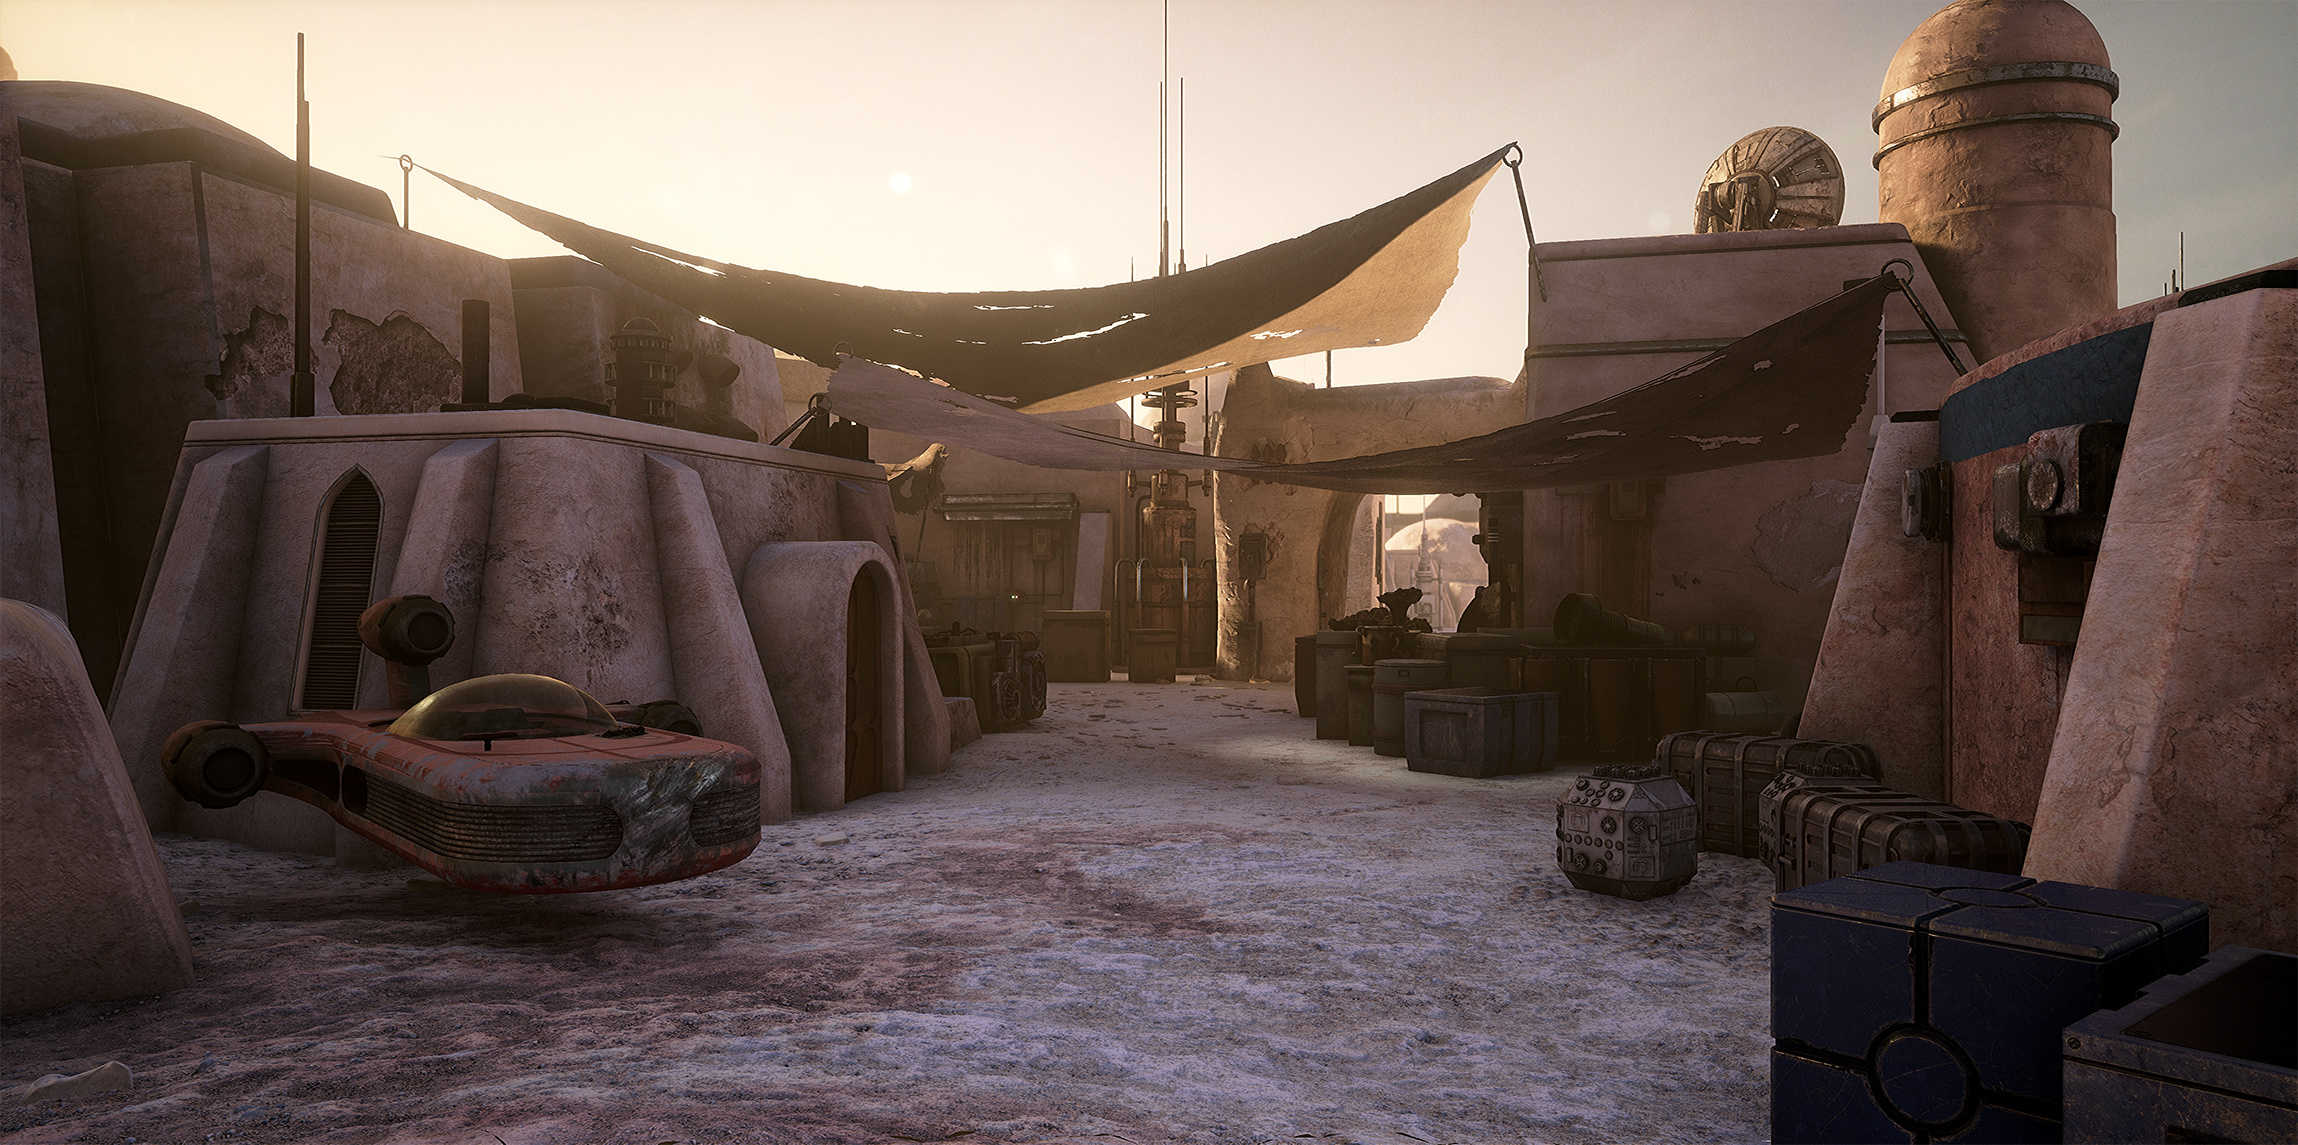 Star Wars Looks Absolutely Stunning On Unreal Engine 4 0bMQwb9